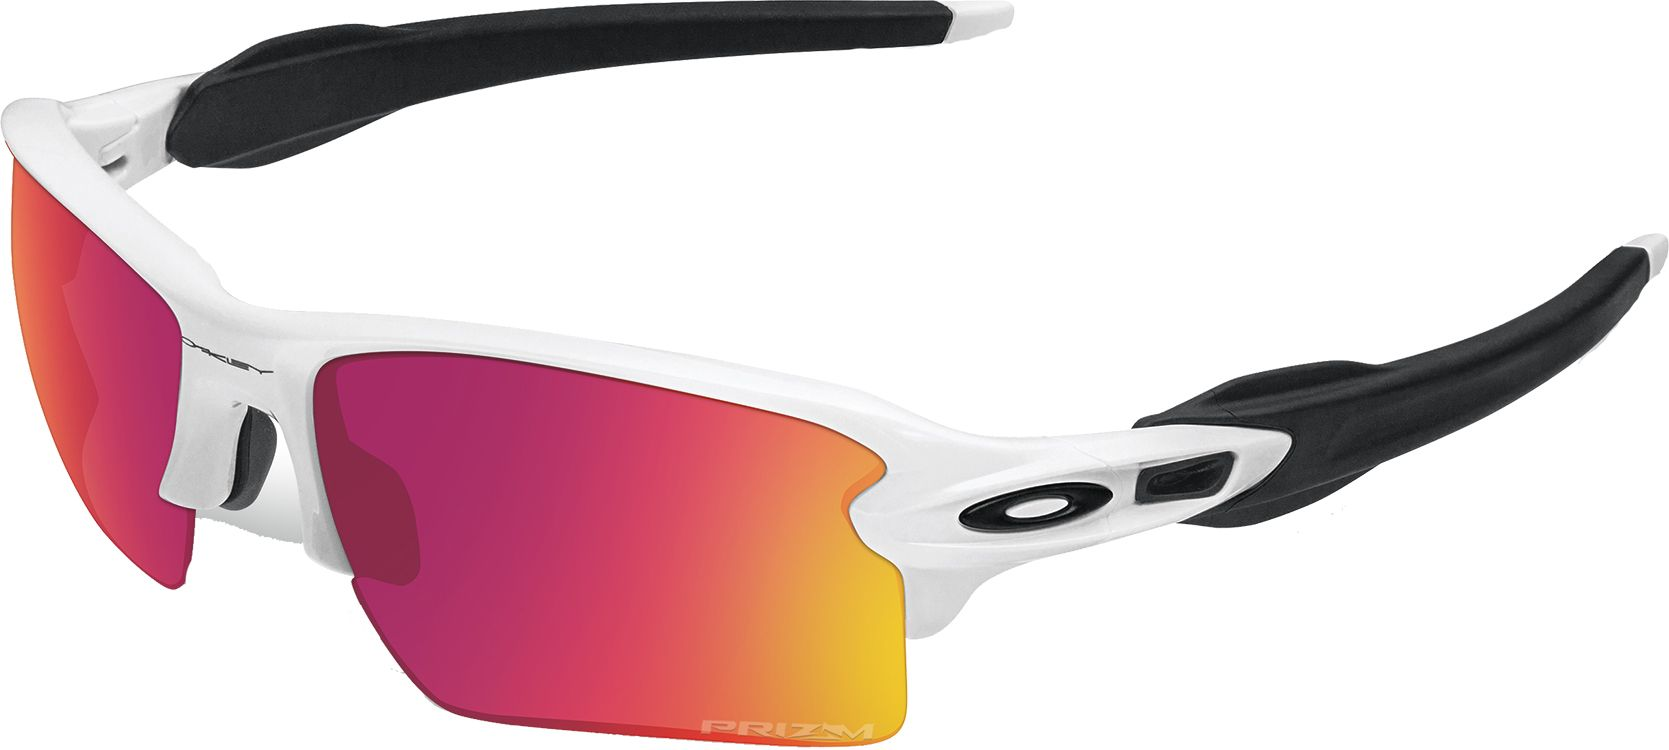 best oakley sunglasses for youth baseball  product image oakley flak 2.0 xl baseball sunglasses